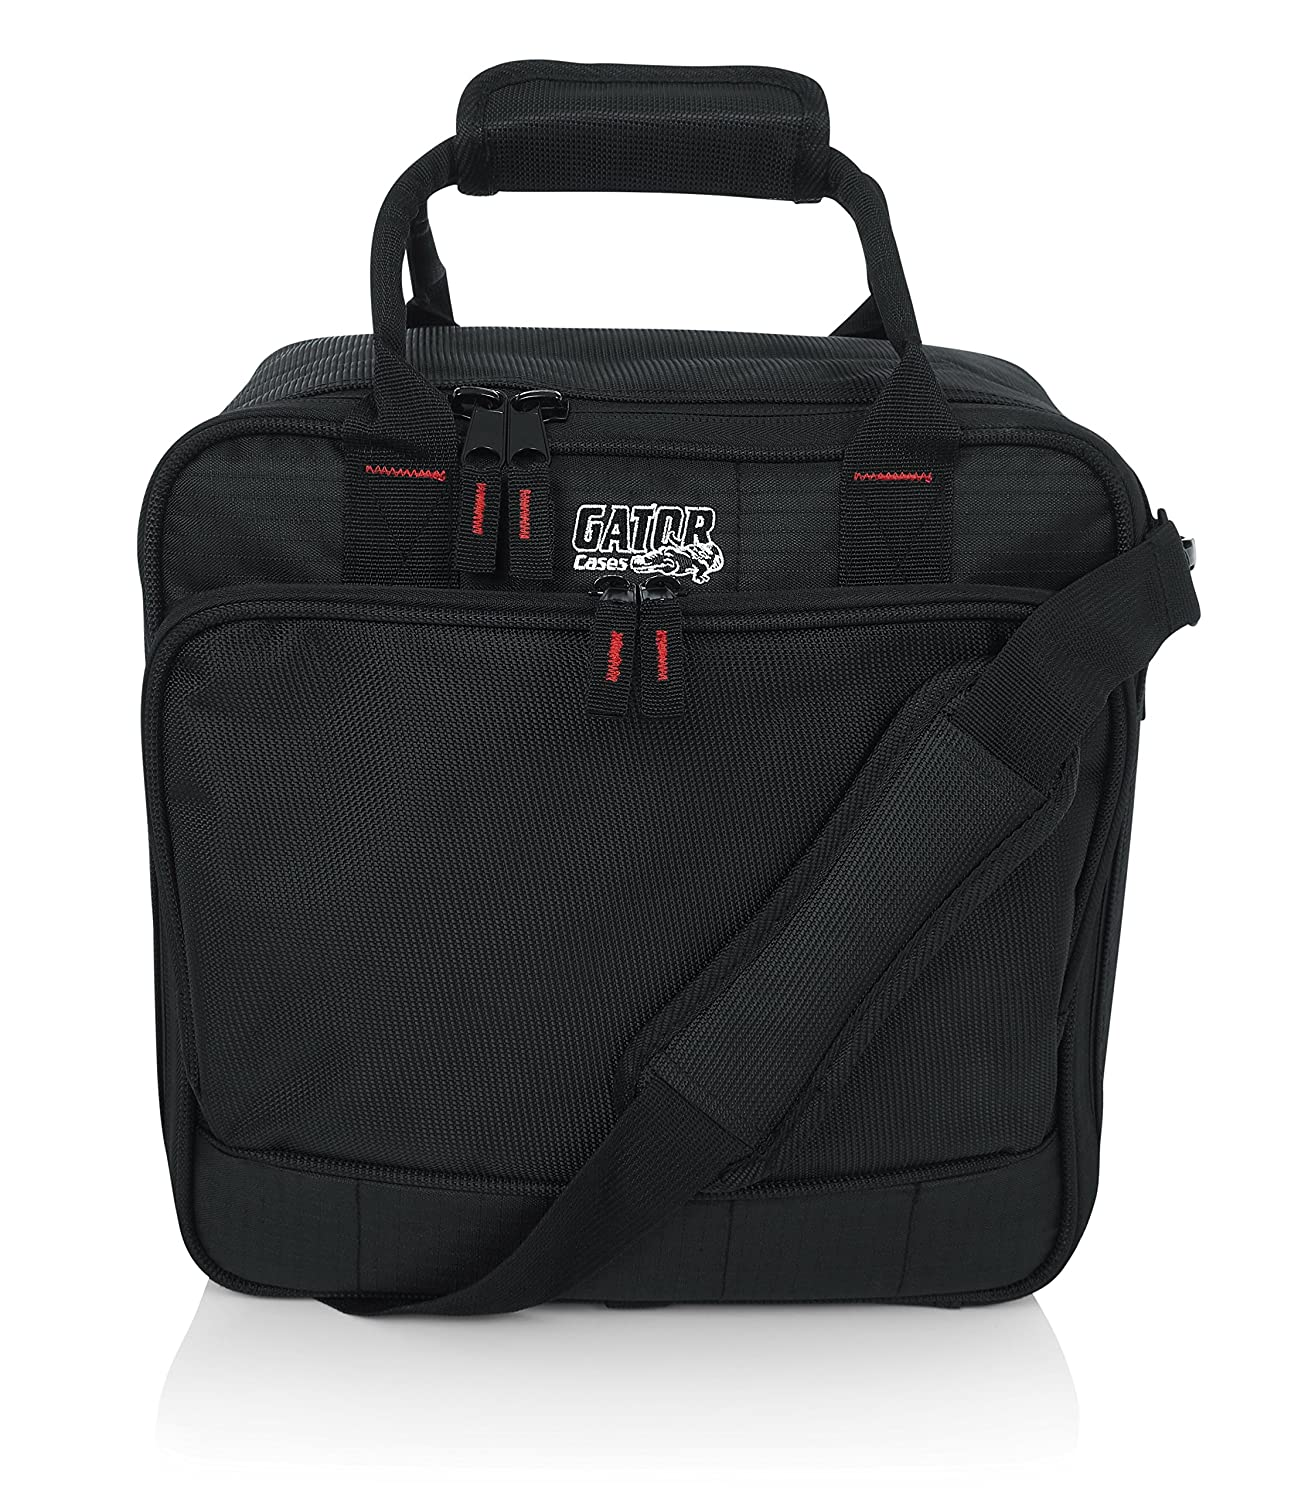 Gator Cases G MIXERBAG 1212 Inches Mixer Image 2